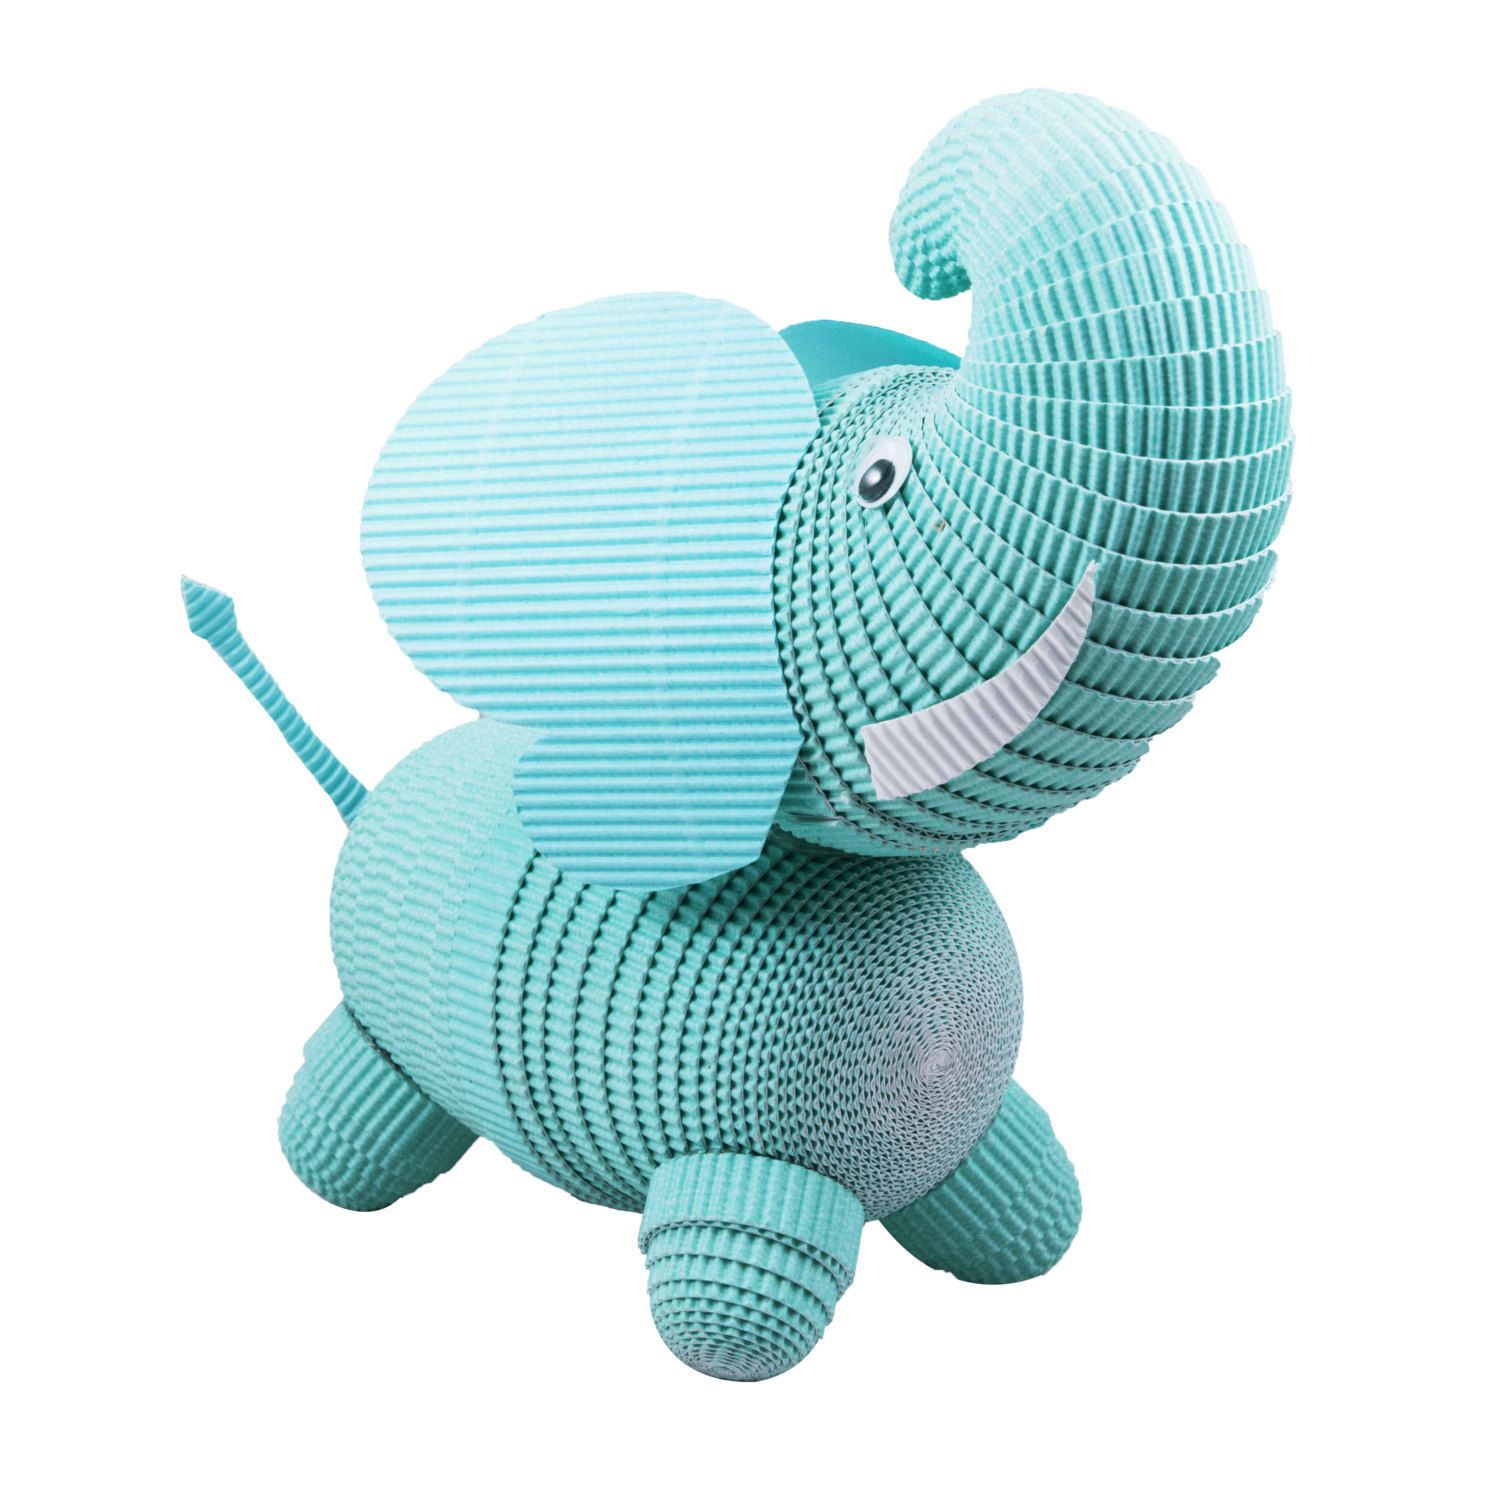 Elephant Nursery and Kids Room decor.  Handmade from Paper Quilling Paper by PaperCraftCreatures on Etsy